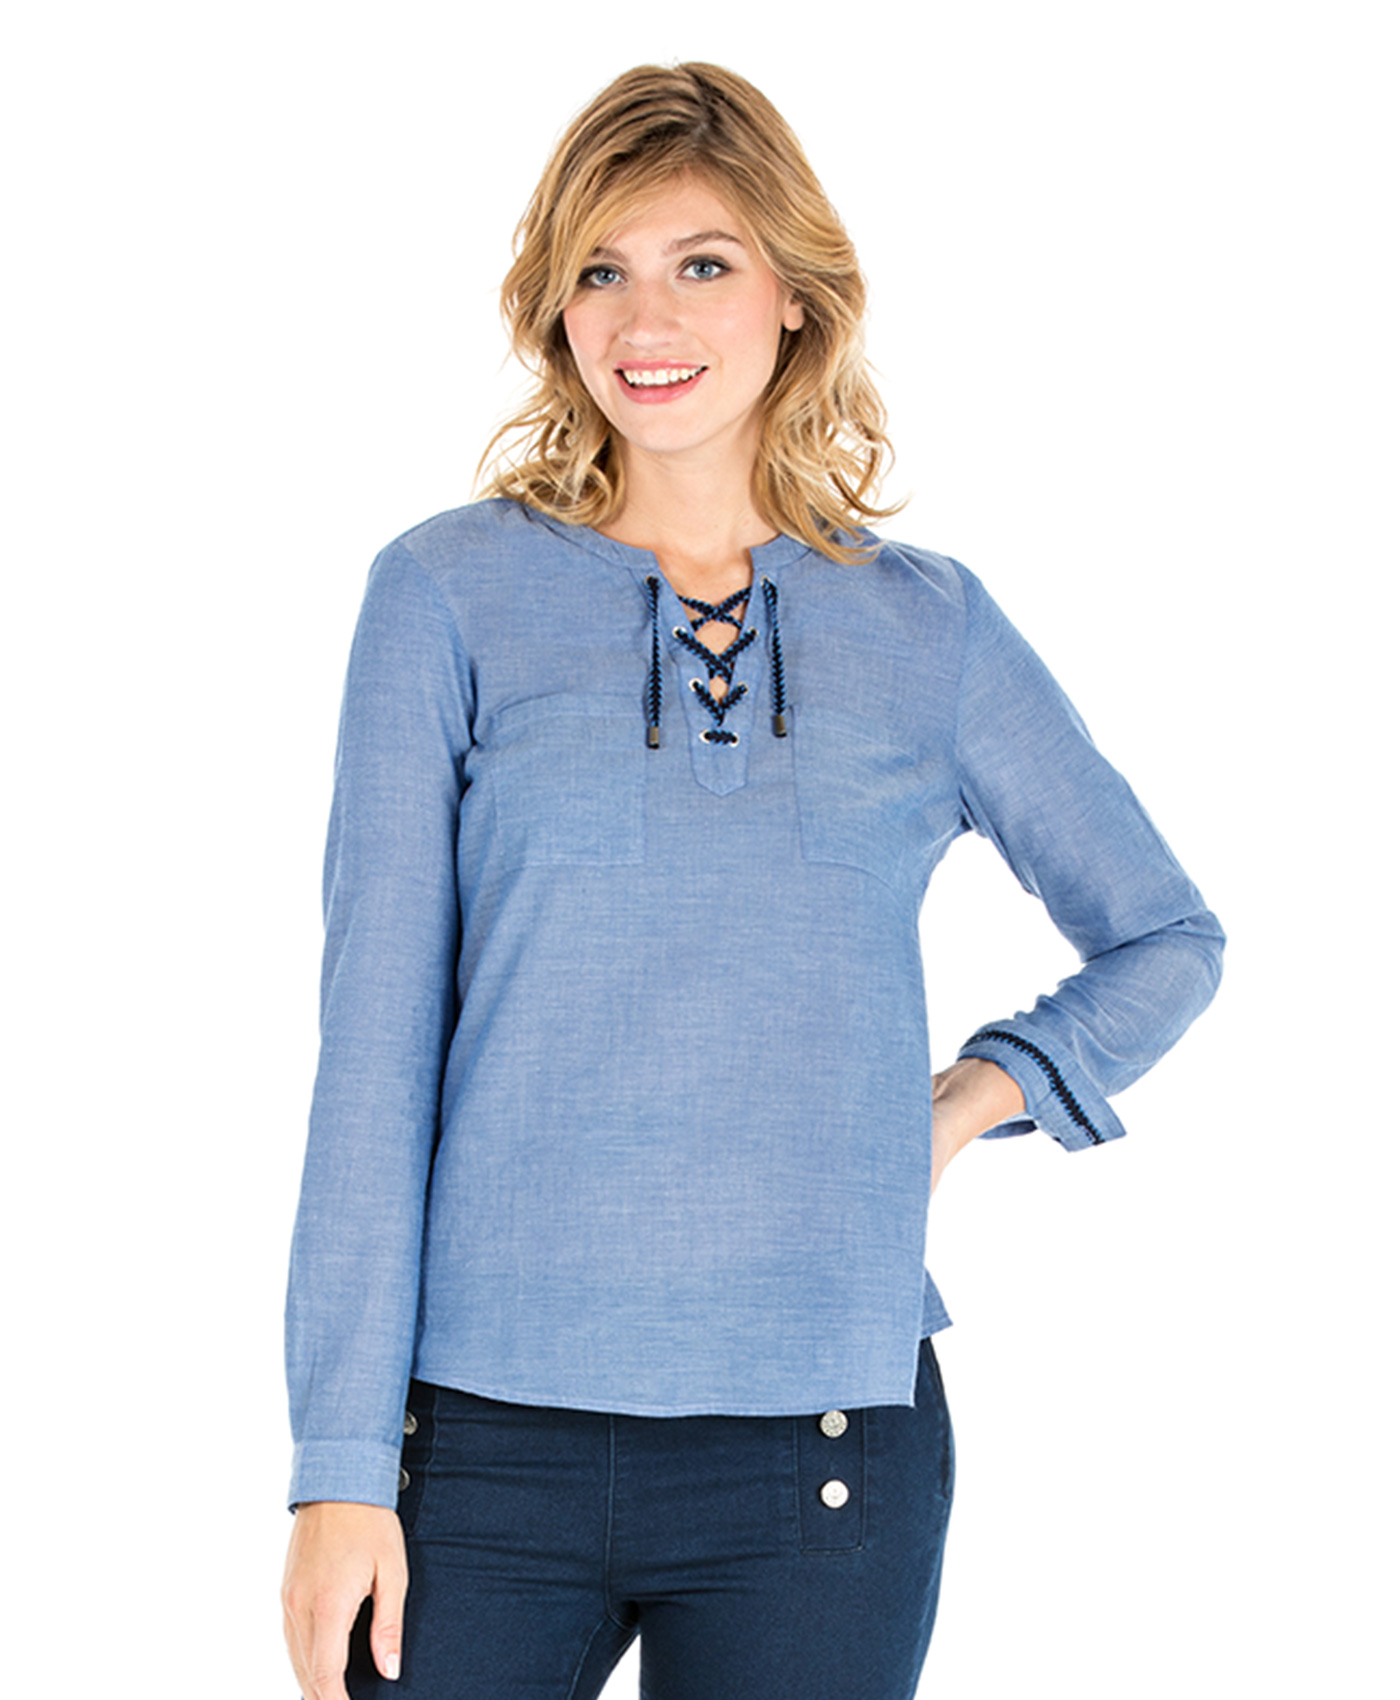 Tunique chambray femme - Mode marine Femme